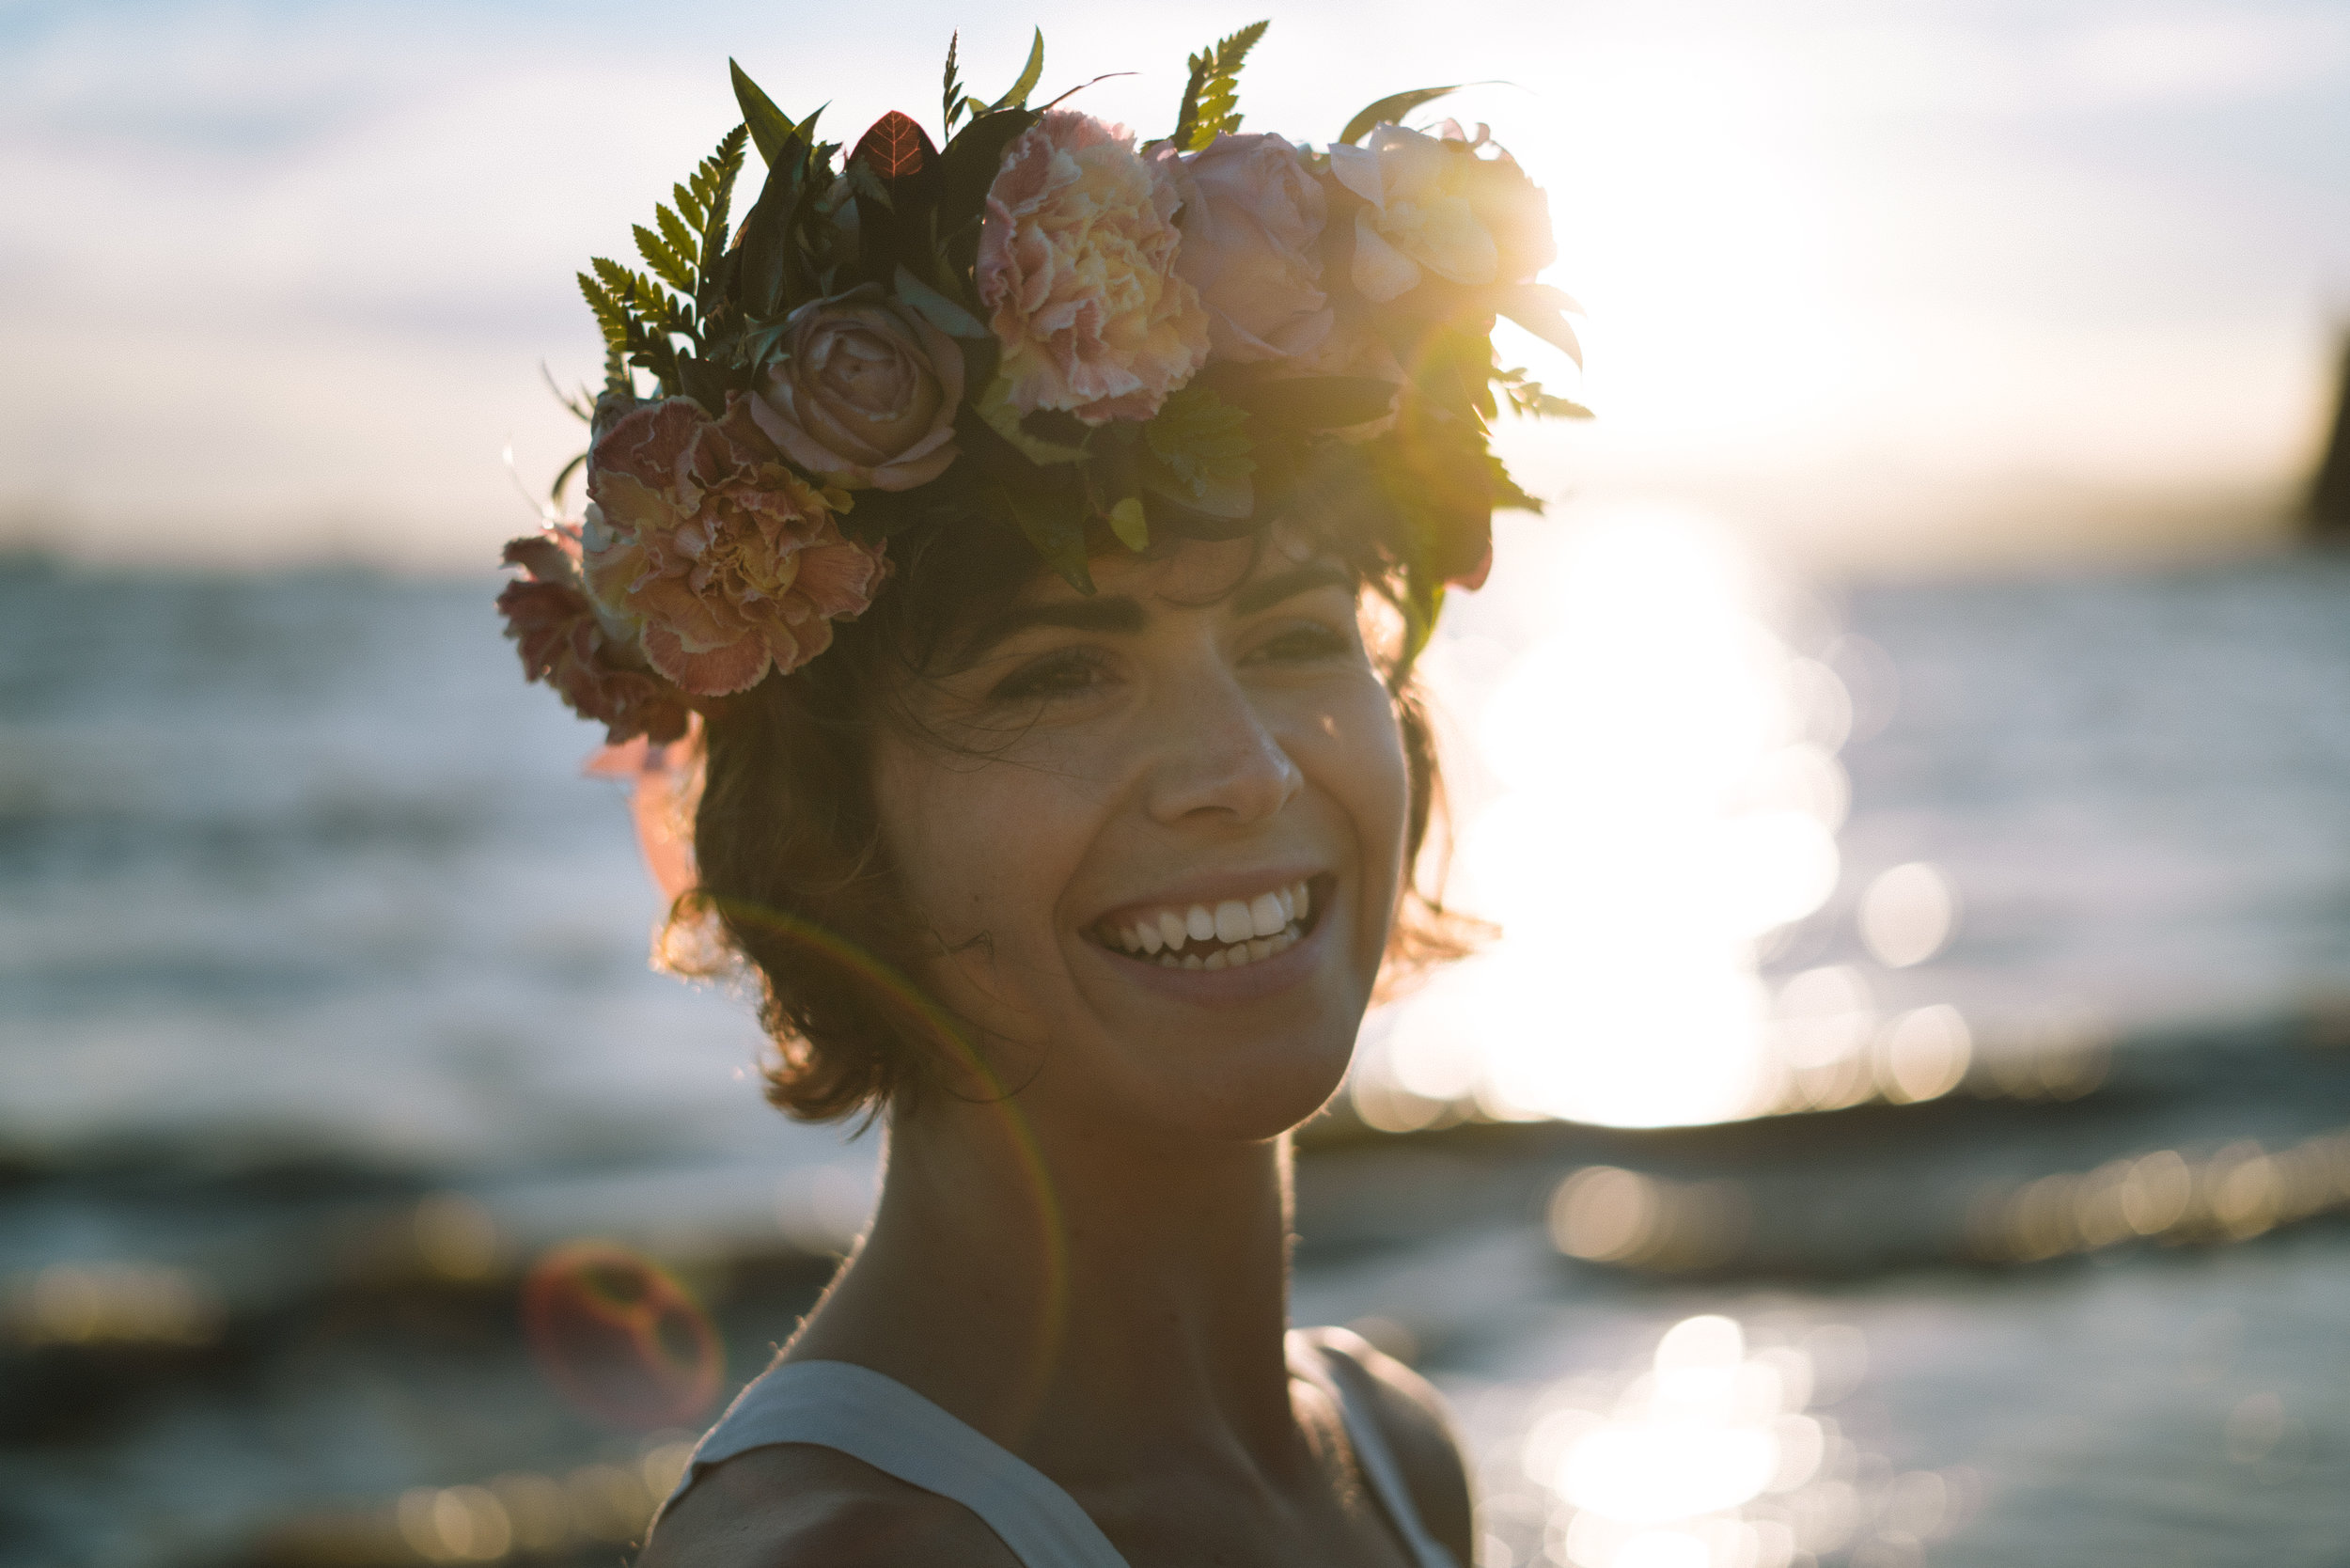 Vancouver-Canada-Travel-Elopement-Adventure-Wedding-Bouquet-Flower-Crown-Photographer-Emma-Rae.jpg